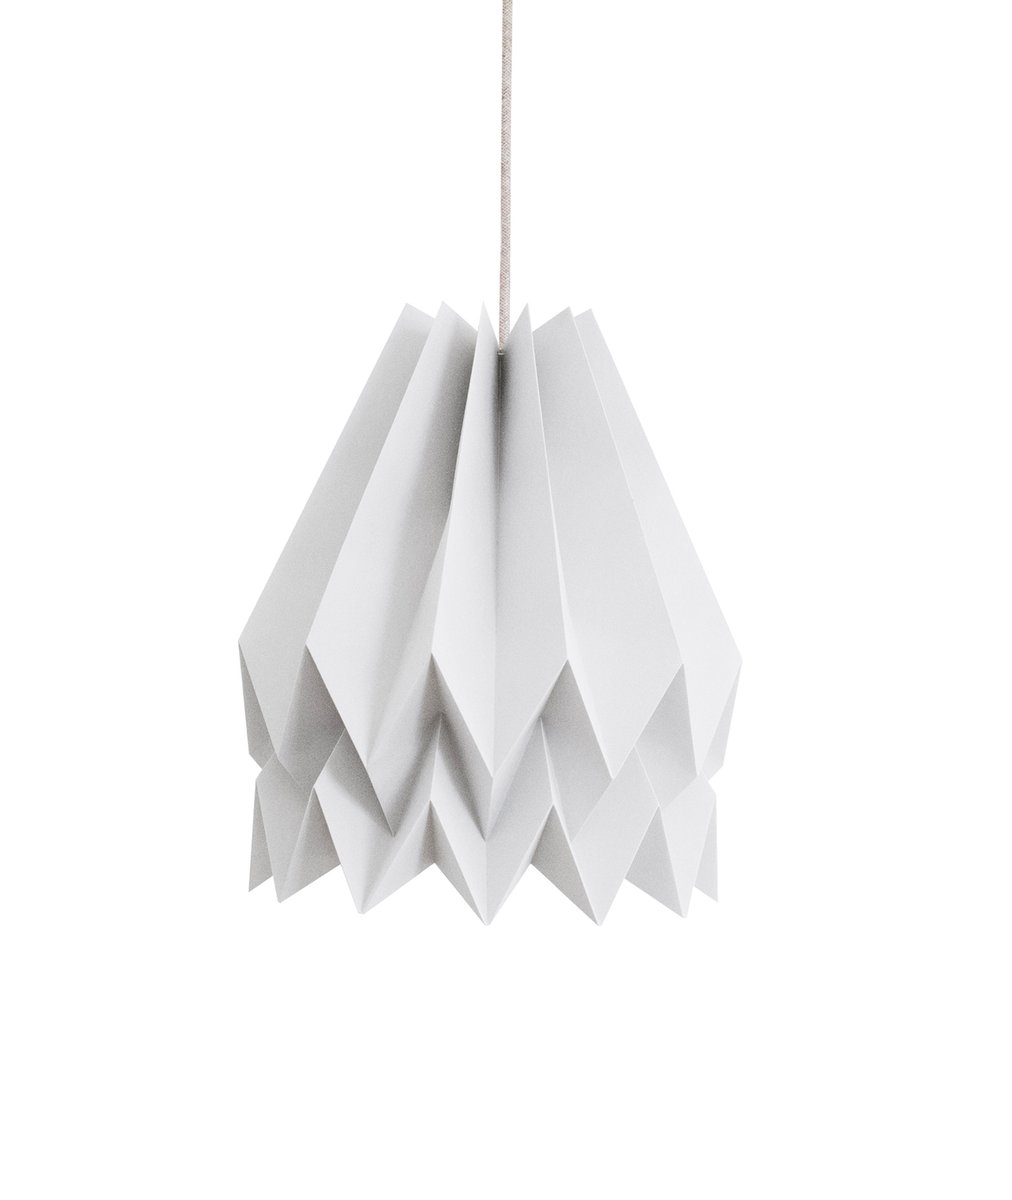 Light Grey Origami Lamp By Orikomi